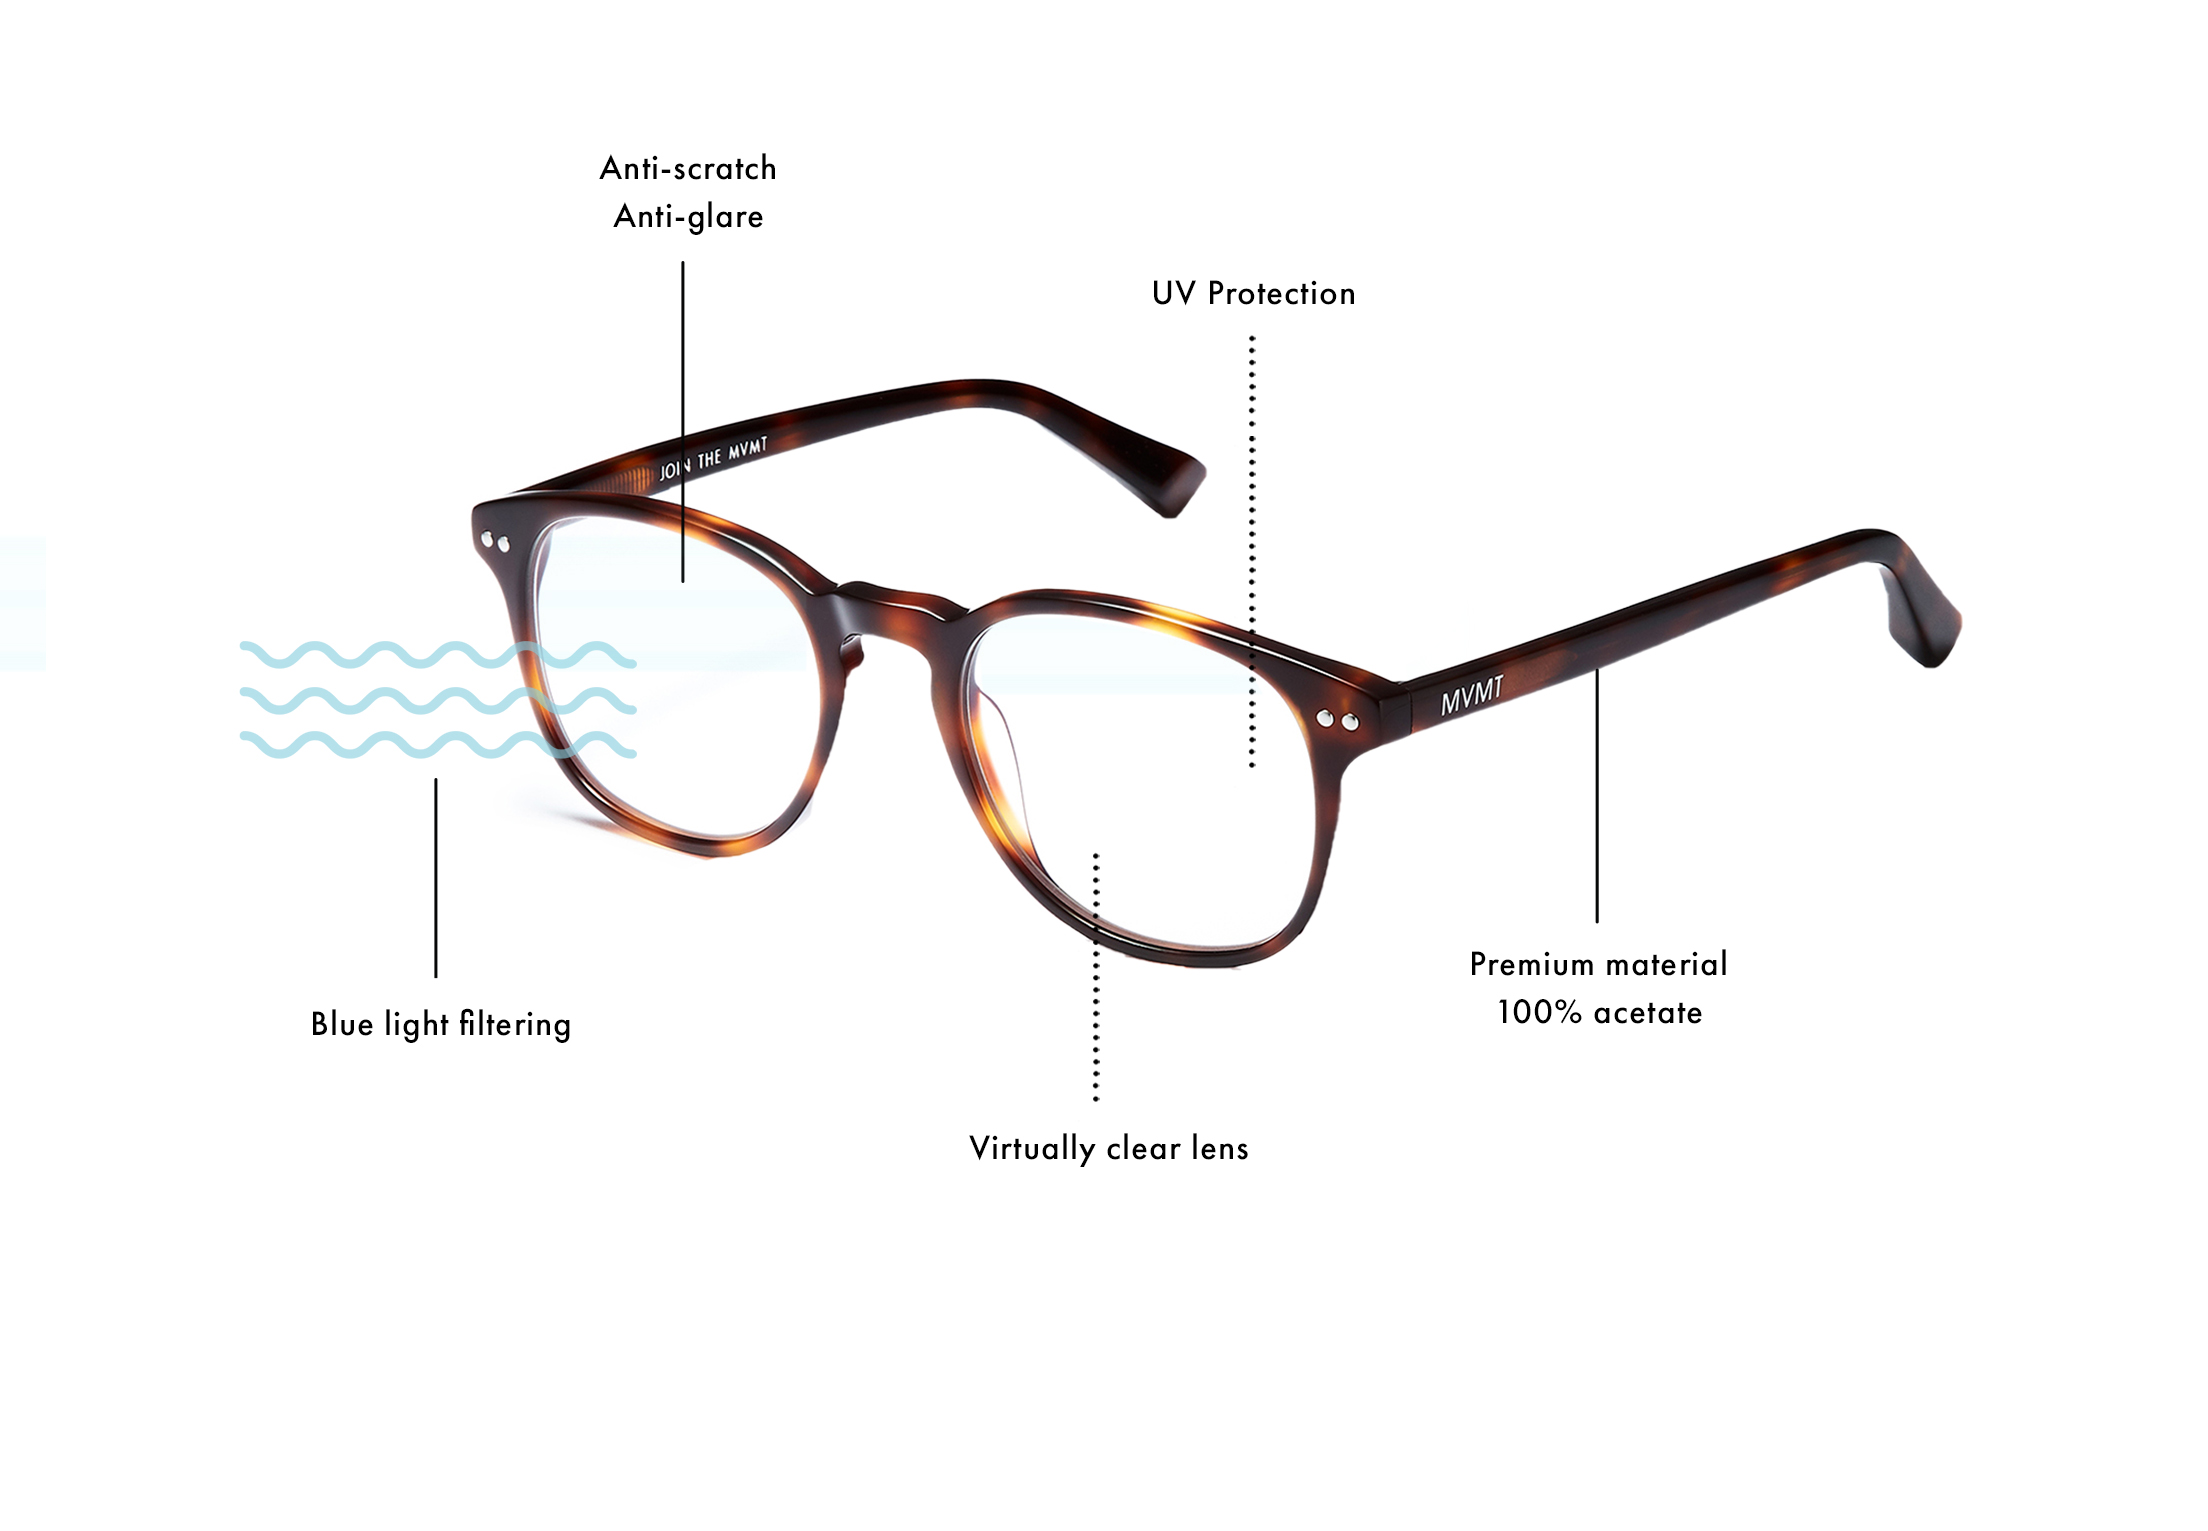 Anti-scratch, anti-glare, UV protection, blue light filtering, virtually clear lens, premium material 100% acetate